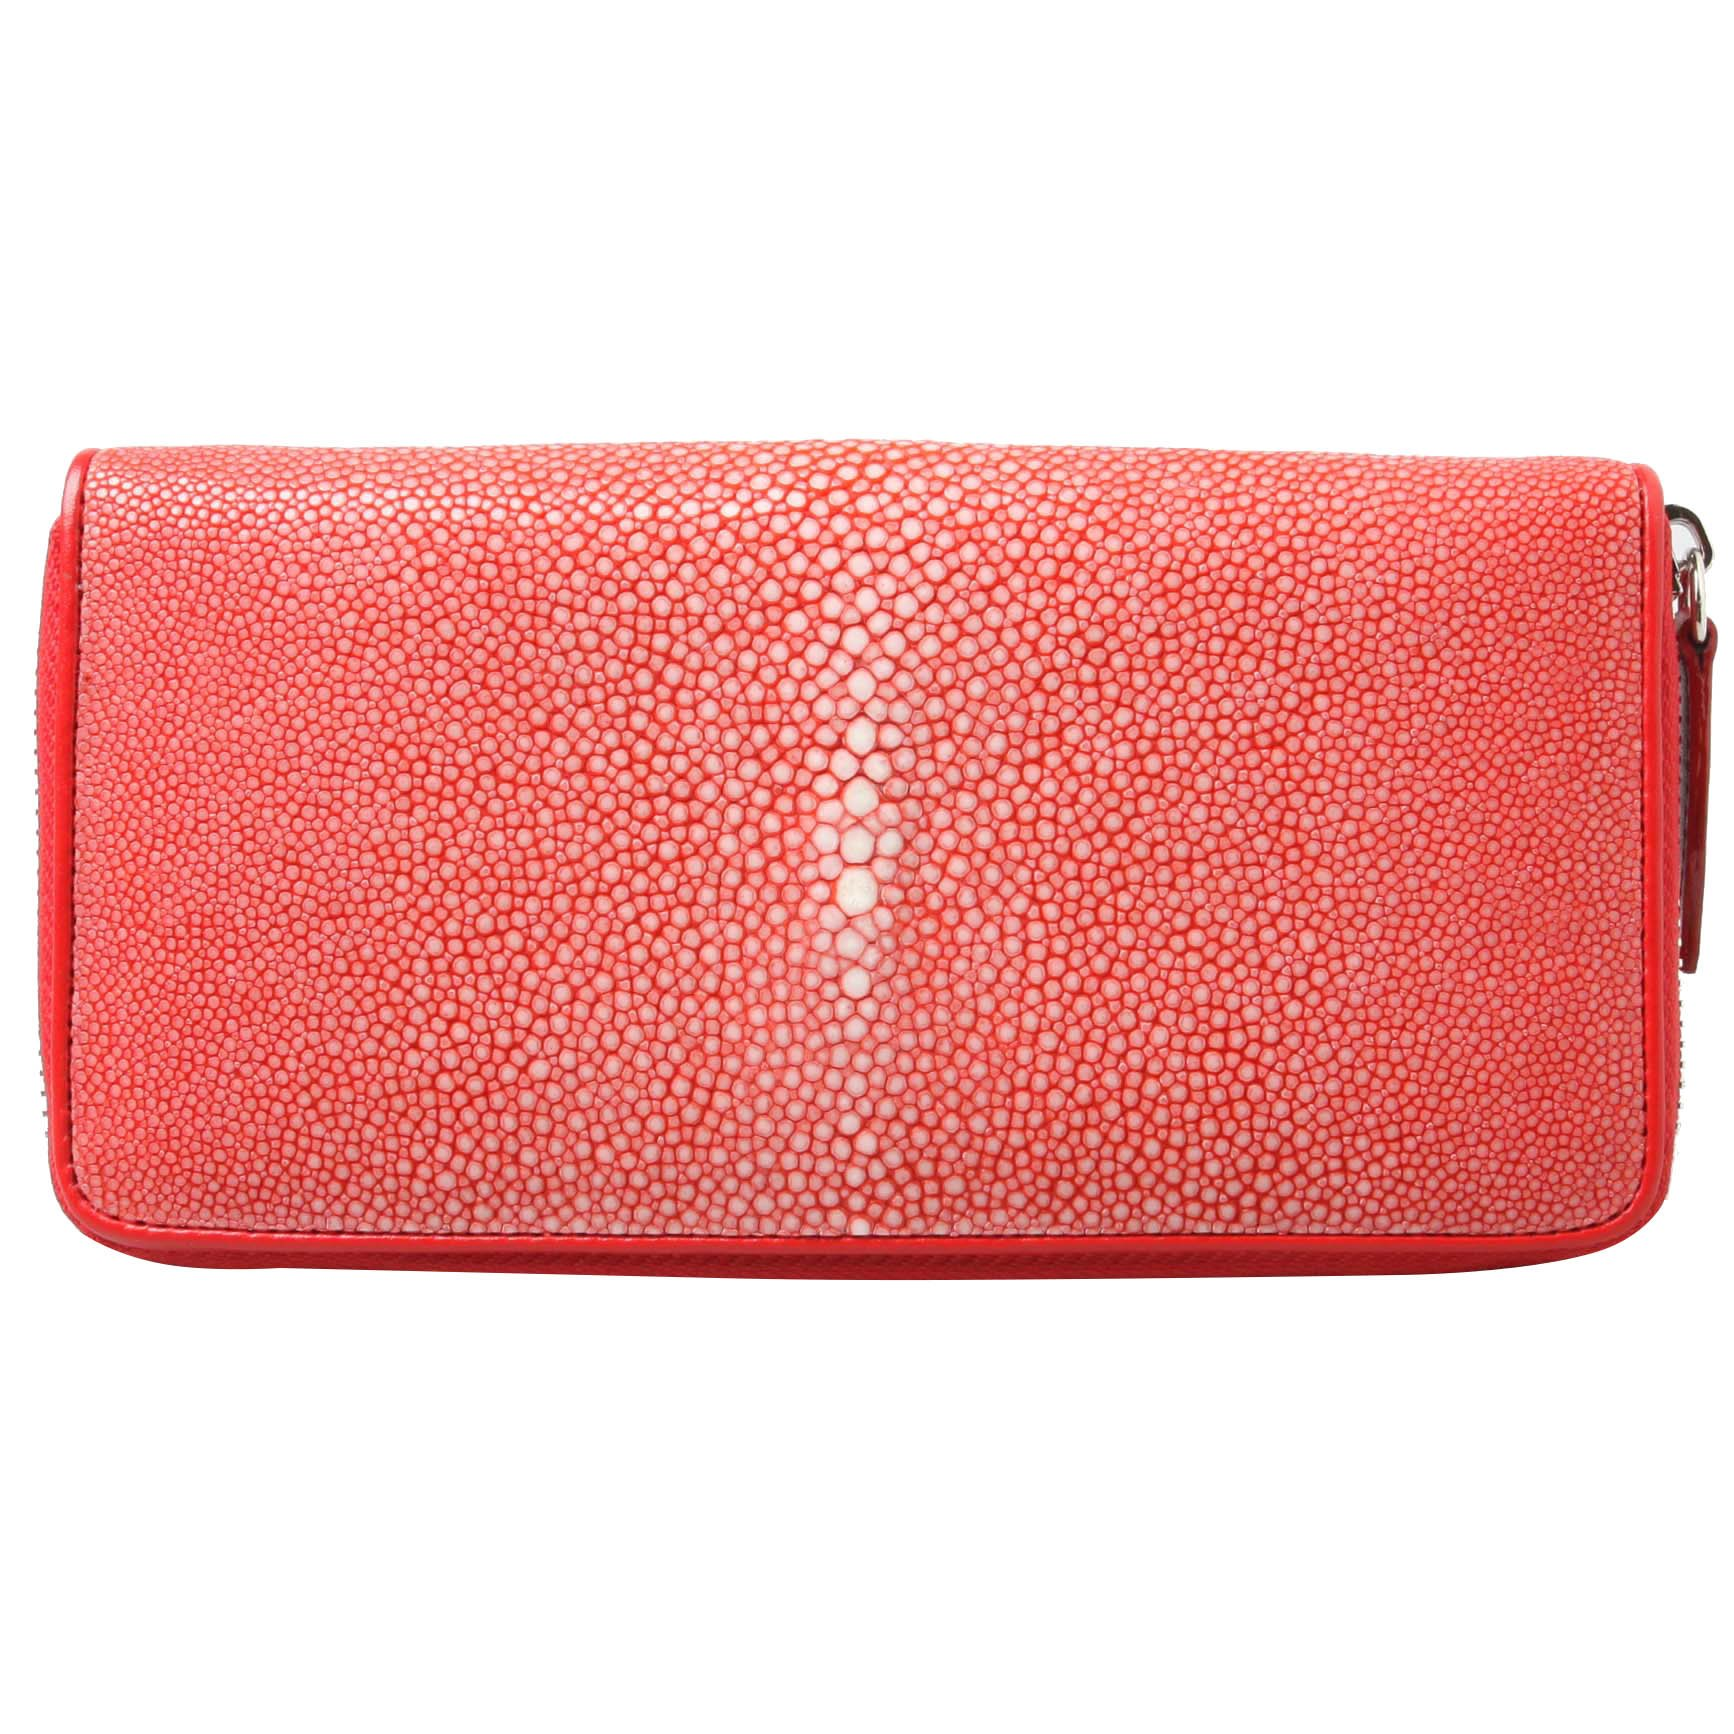 Genuine Polished Stingray Leather Red Clutch Women Zip Around Coin Wallet Purse